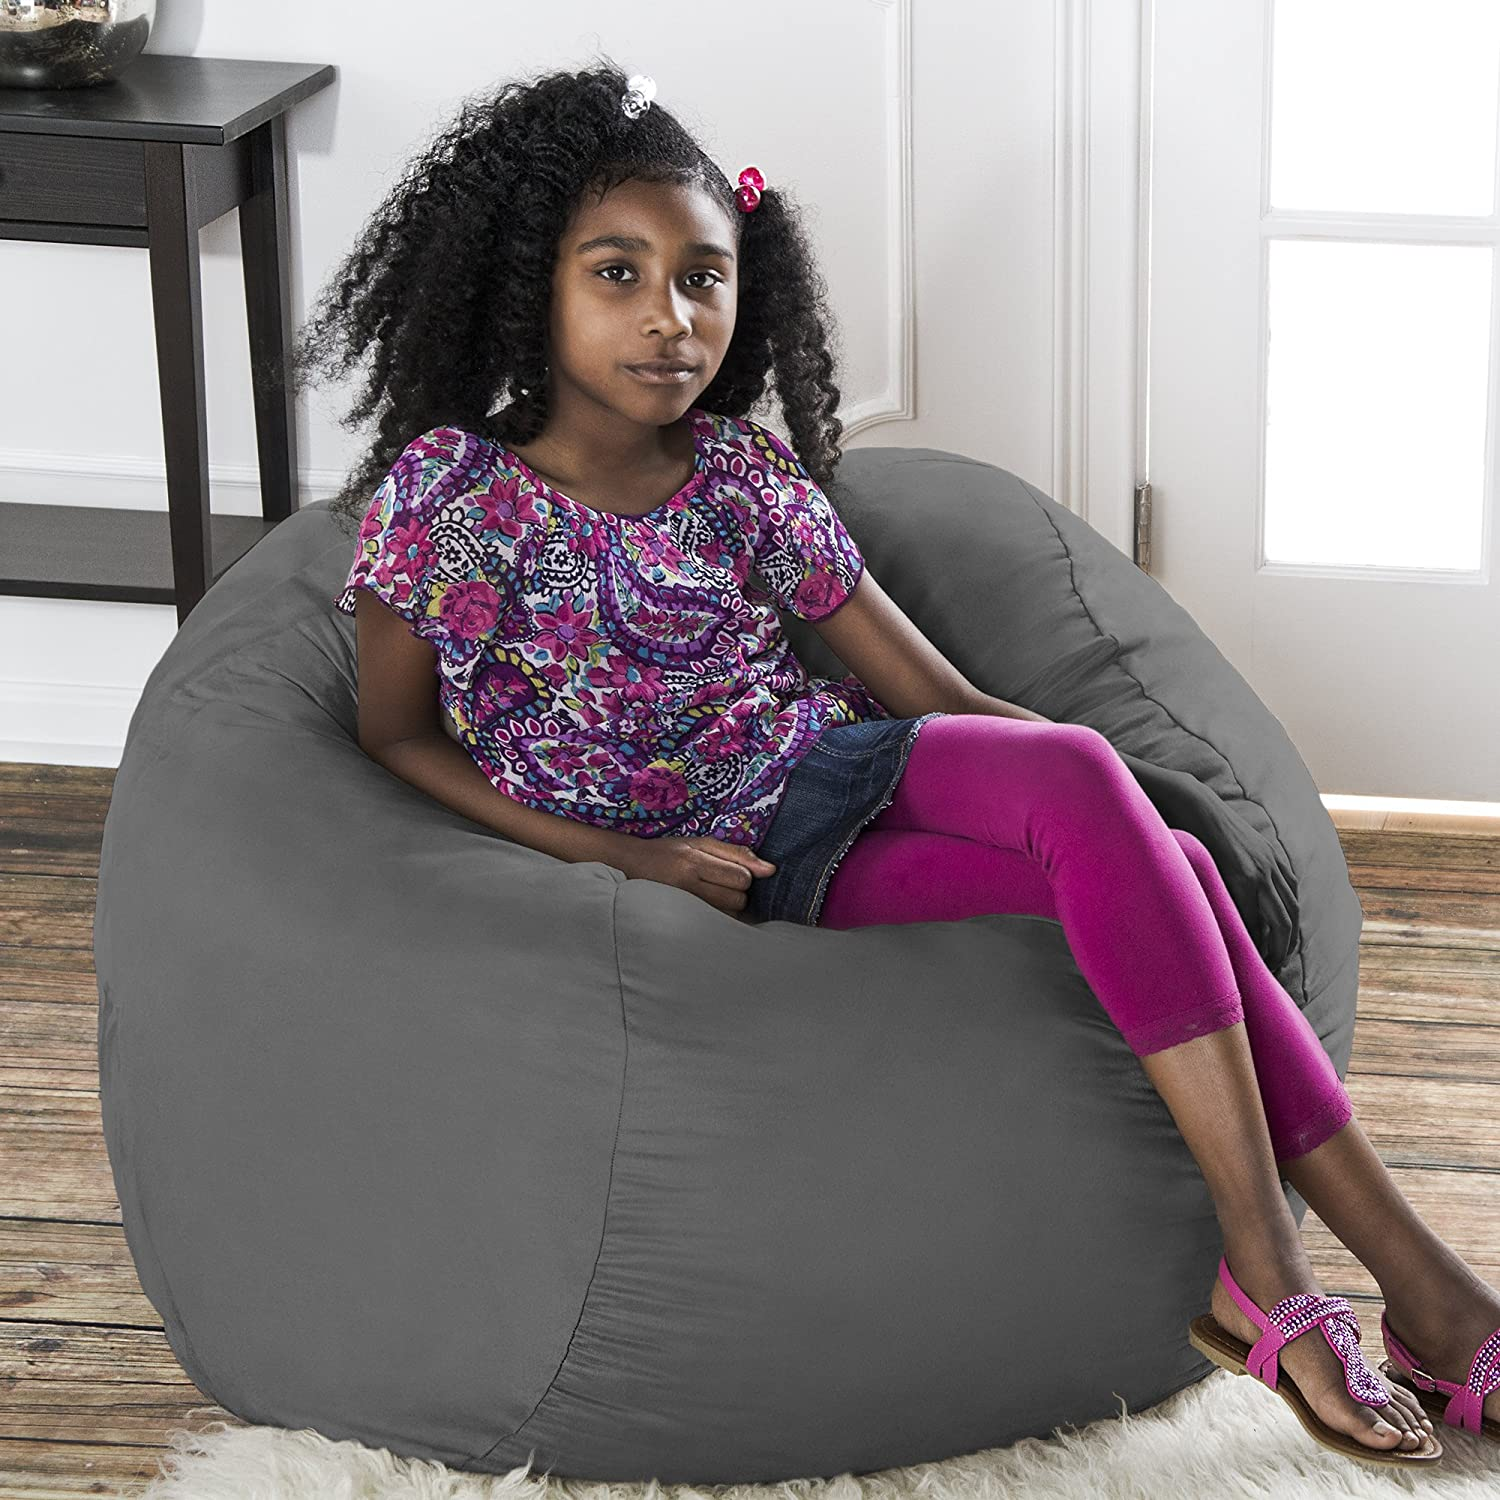 Amazon Jaxx Bean Bag Chair with Removable Cover 3 Charcoal